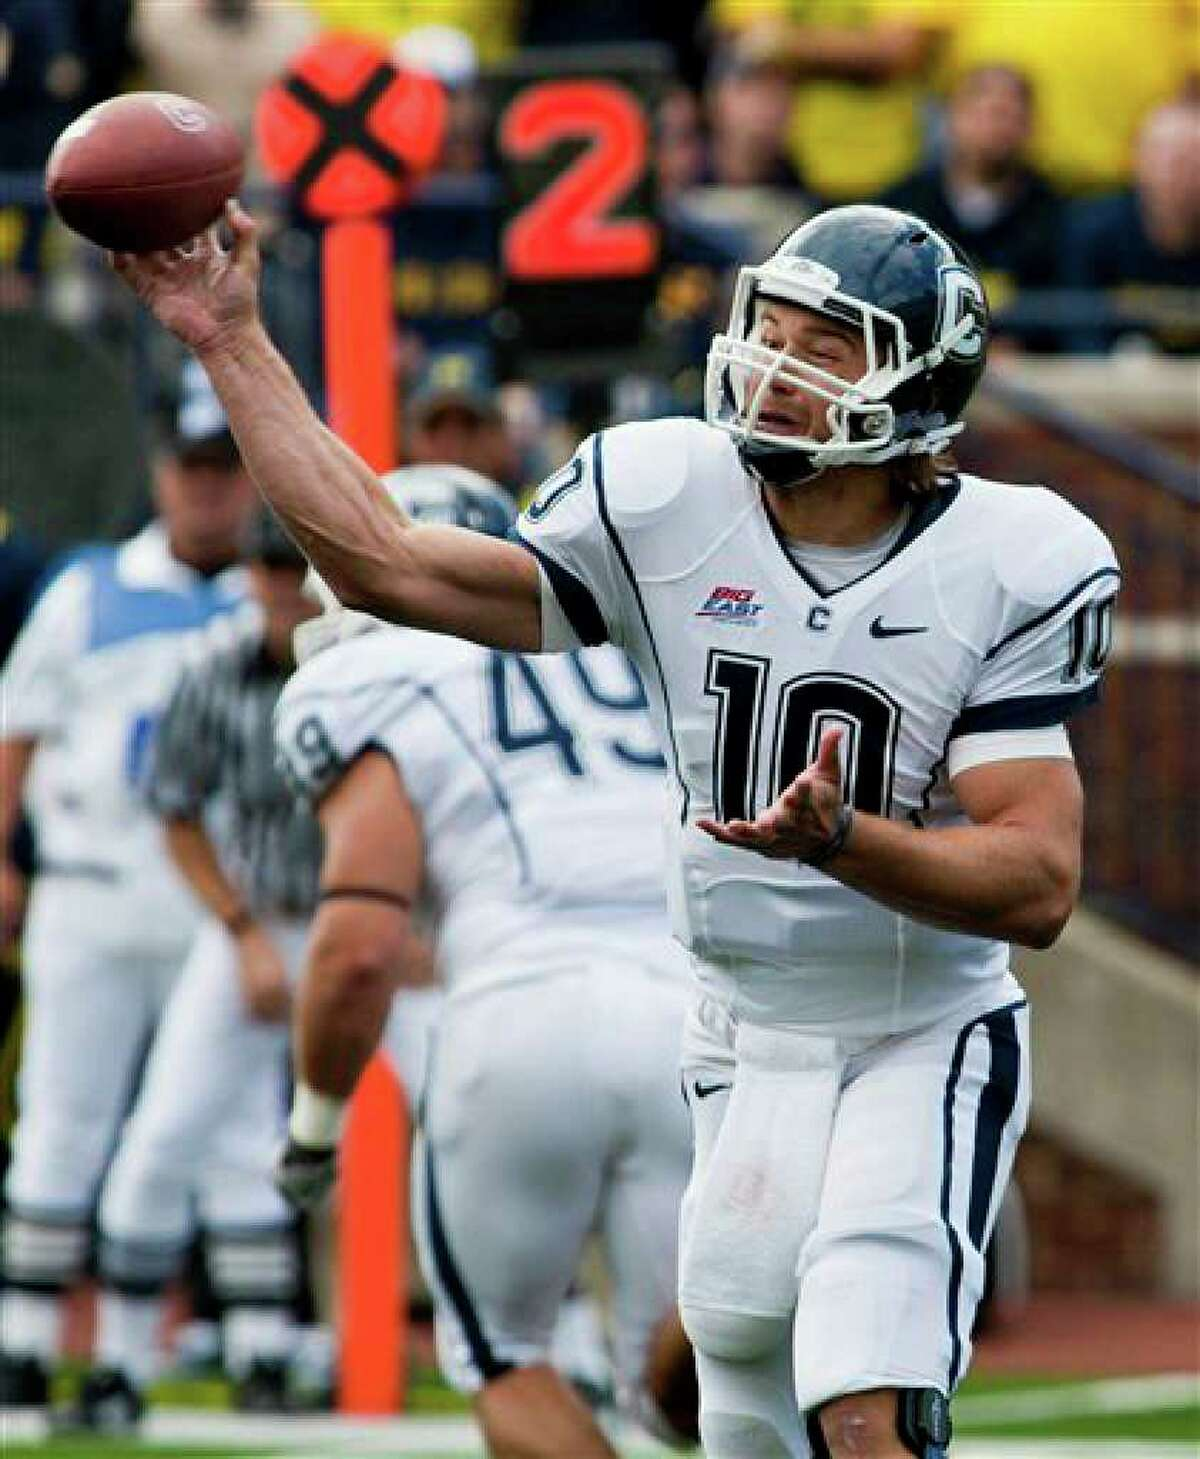 Connecticut quarterback Zach Frazer throws a pass in the second quarter of an NCAA college football game against Michigan, Saturday, Sept. 4, 2010, in Ann Arbor, Mich. (AP Photo/Tony Ding)